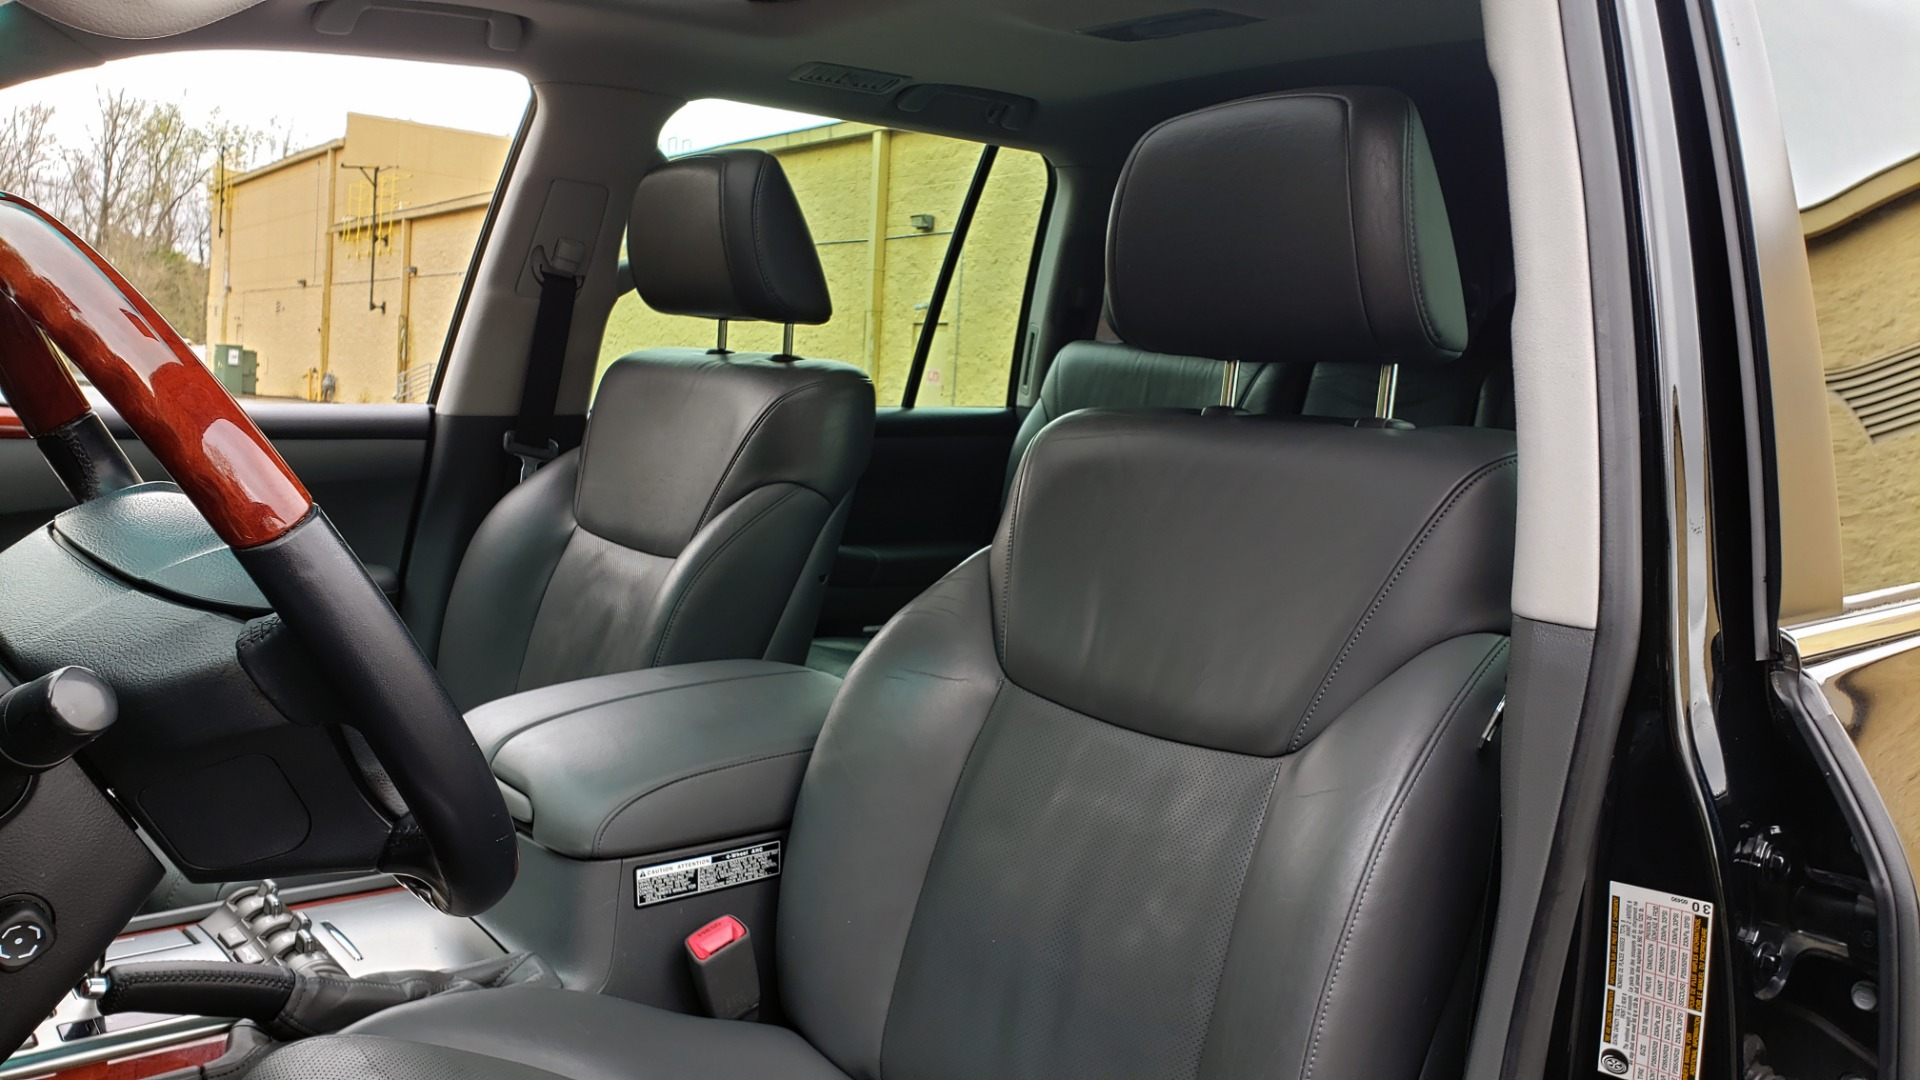 Used 2008 Lexus LX 570 4WD / TECH PKG / NAV / SUNROOF / MARK LEVINSON / PARK ASST for sale $22,995 at Formula Imports in Charlotte NC 28227 37